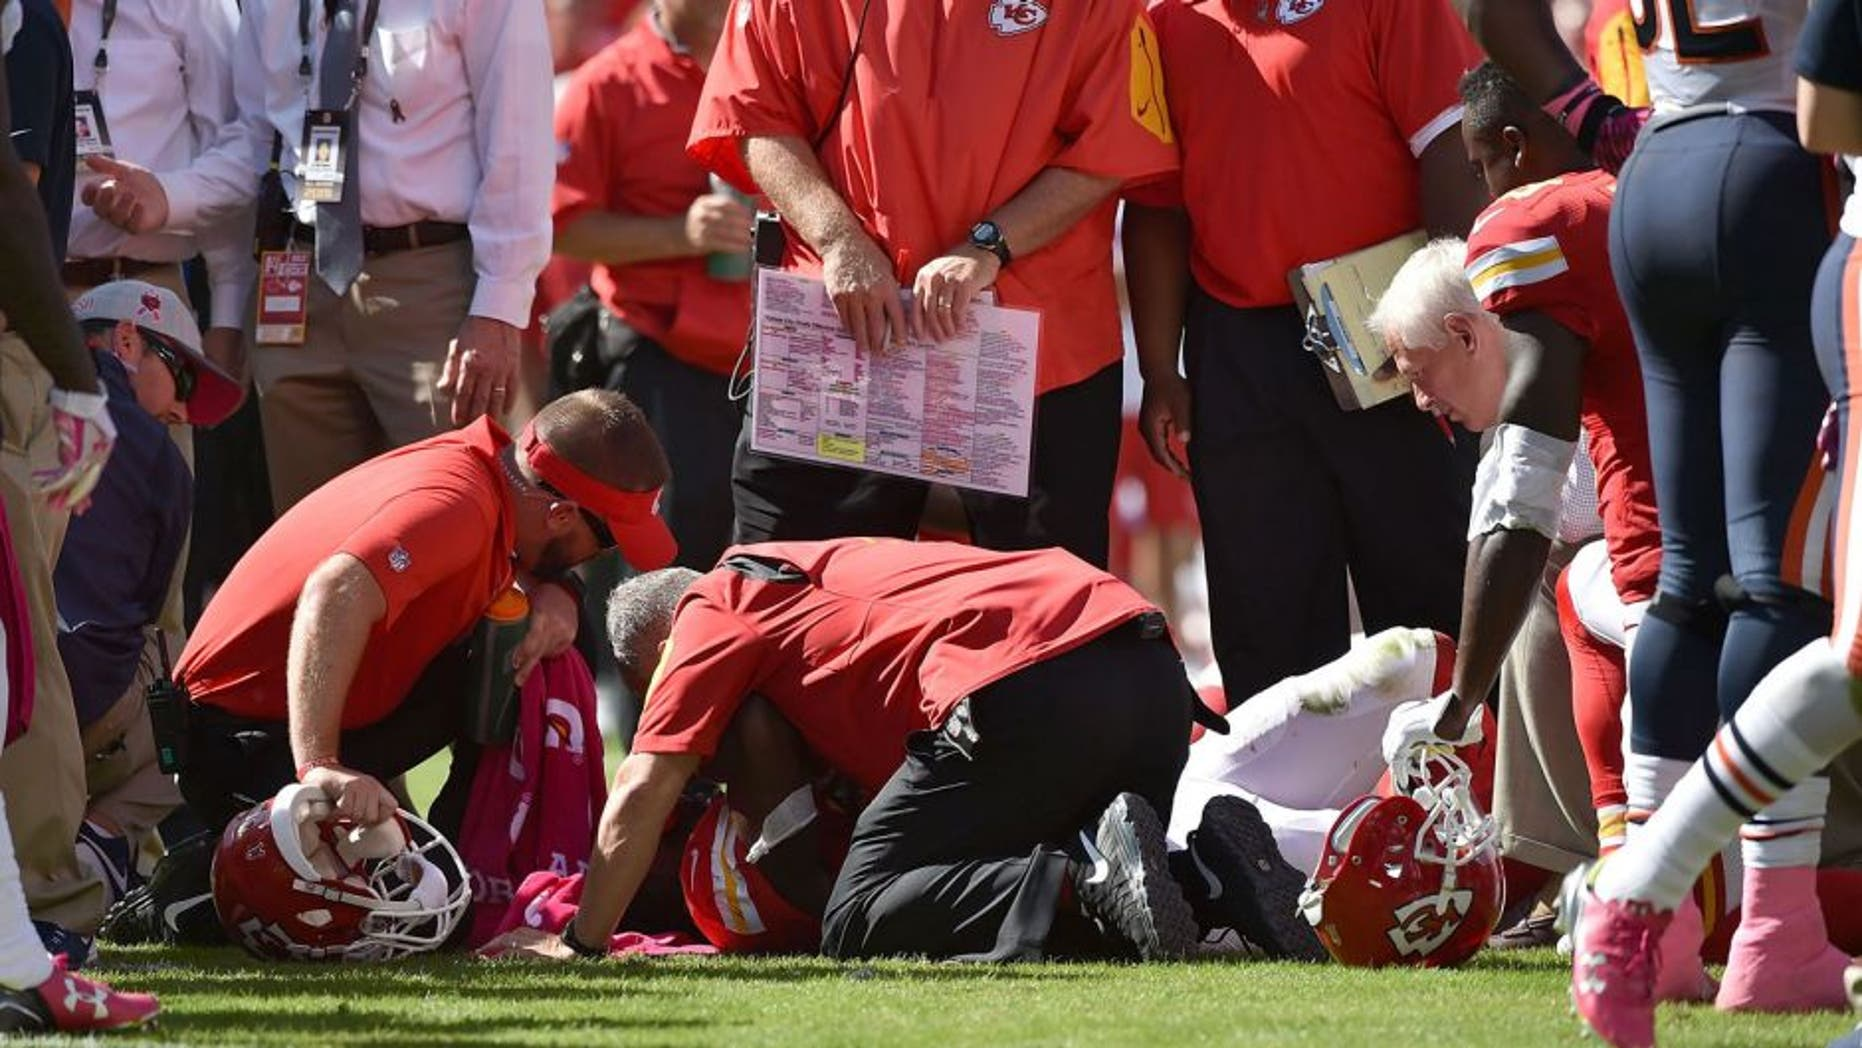 KANSAS CITY, MO - OCTOBER 11: Kansas City Chiefs training staff attends to an injury for Jamaal Charles #25 of the Kansas City Chiefs after a run with head coach Andy Reid of the Kansas City Chiefs overlooking at Arrowhead Stadium during the game against the Chicago Bears on October 11, 2015 in Kansas City, Missouri. (Photo by Peter Aiken/Getty Images)